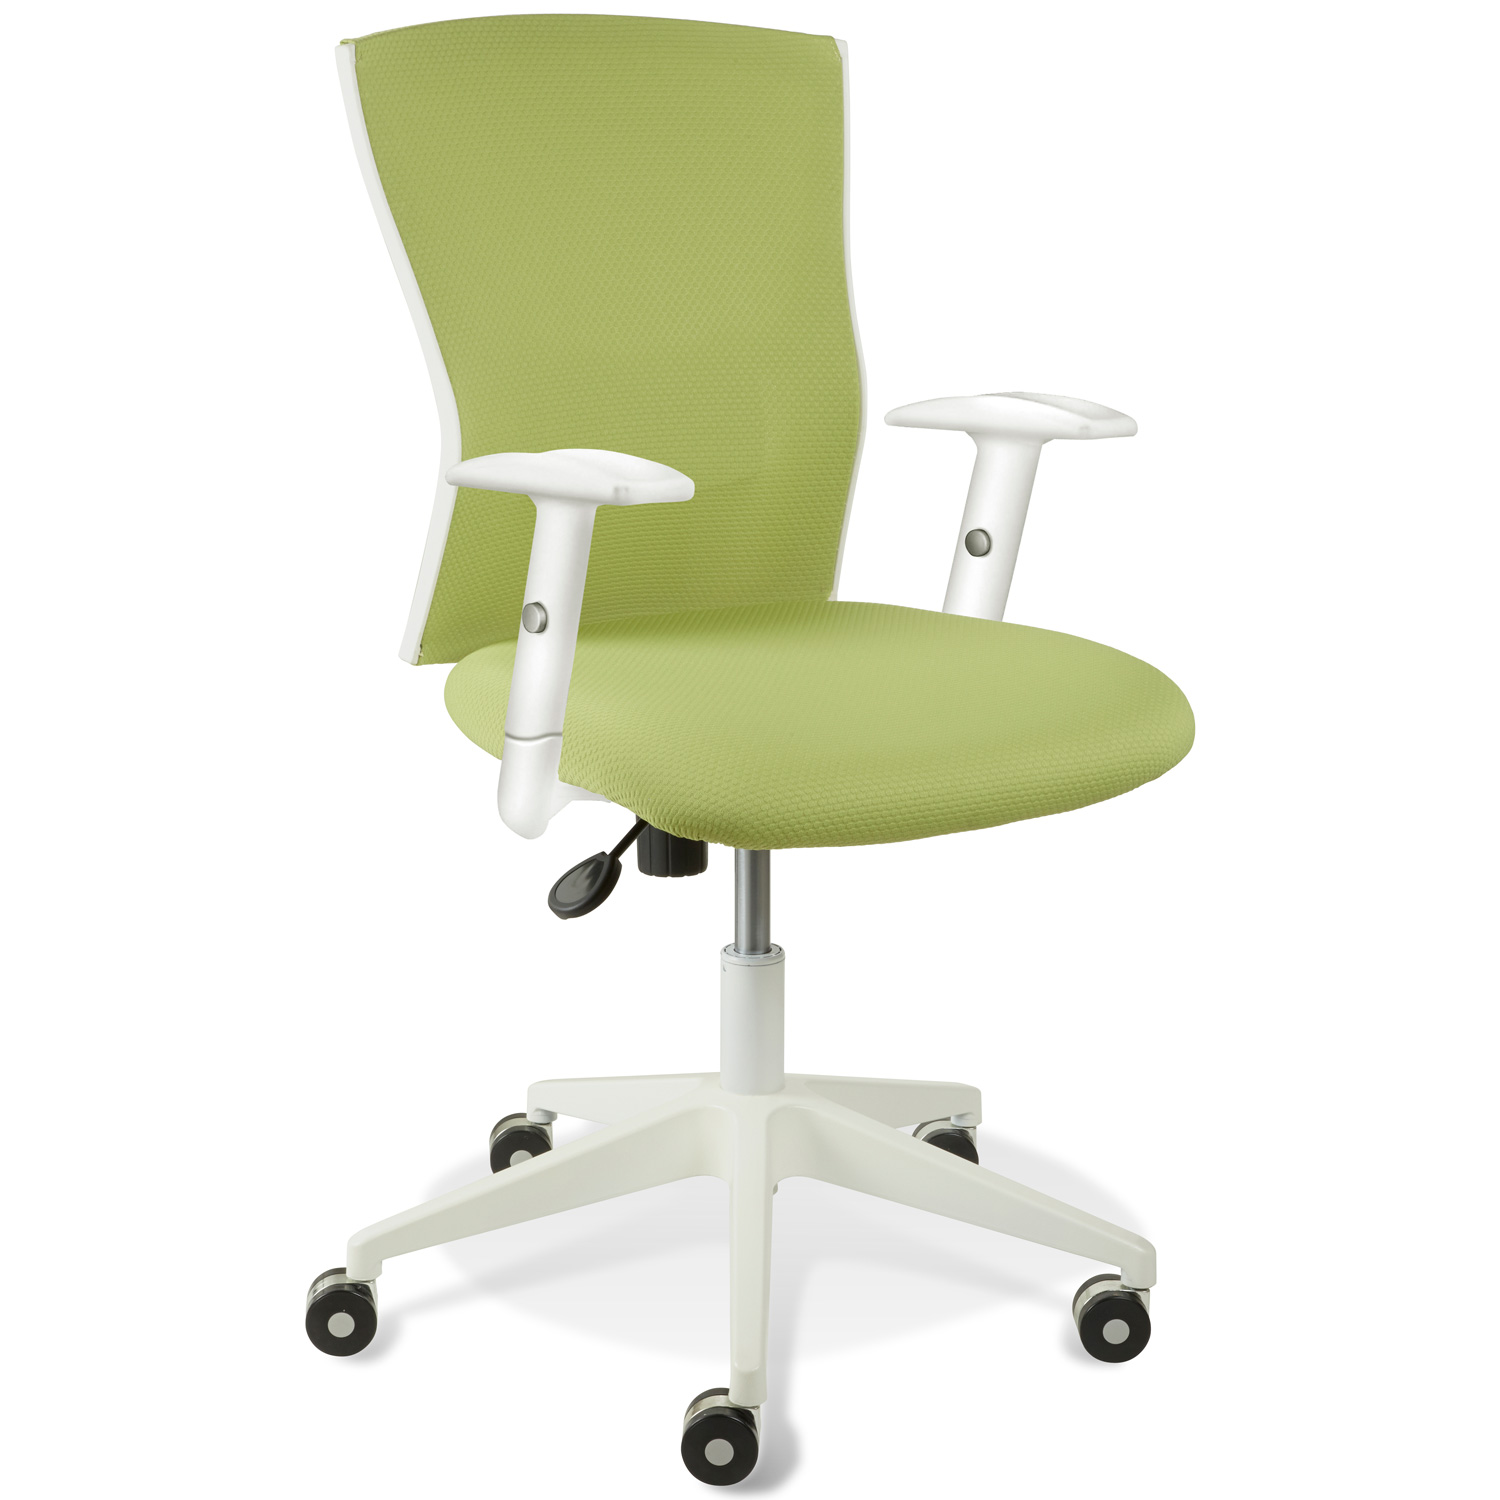 Sanne Office Chair - Tilt, Adjustable Arms, White & Green